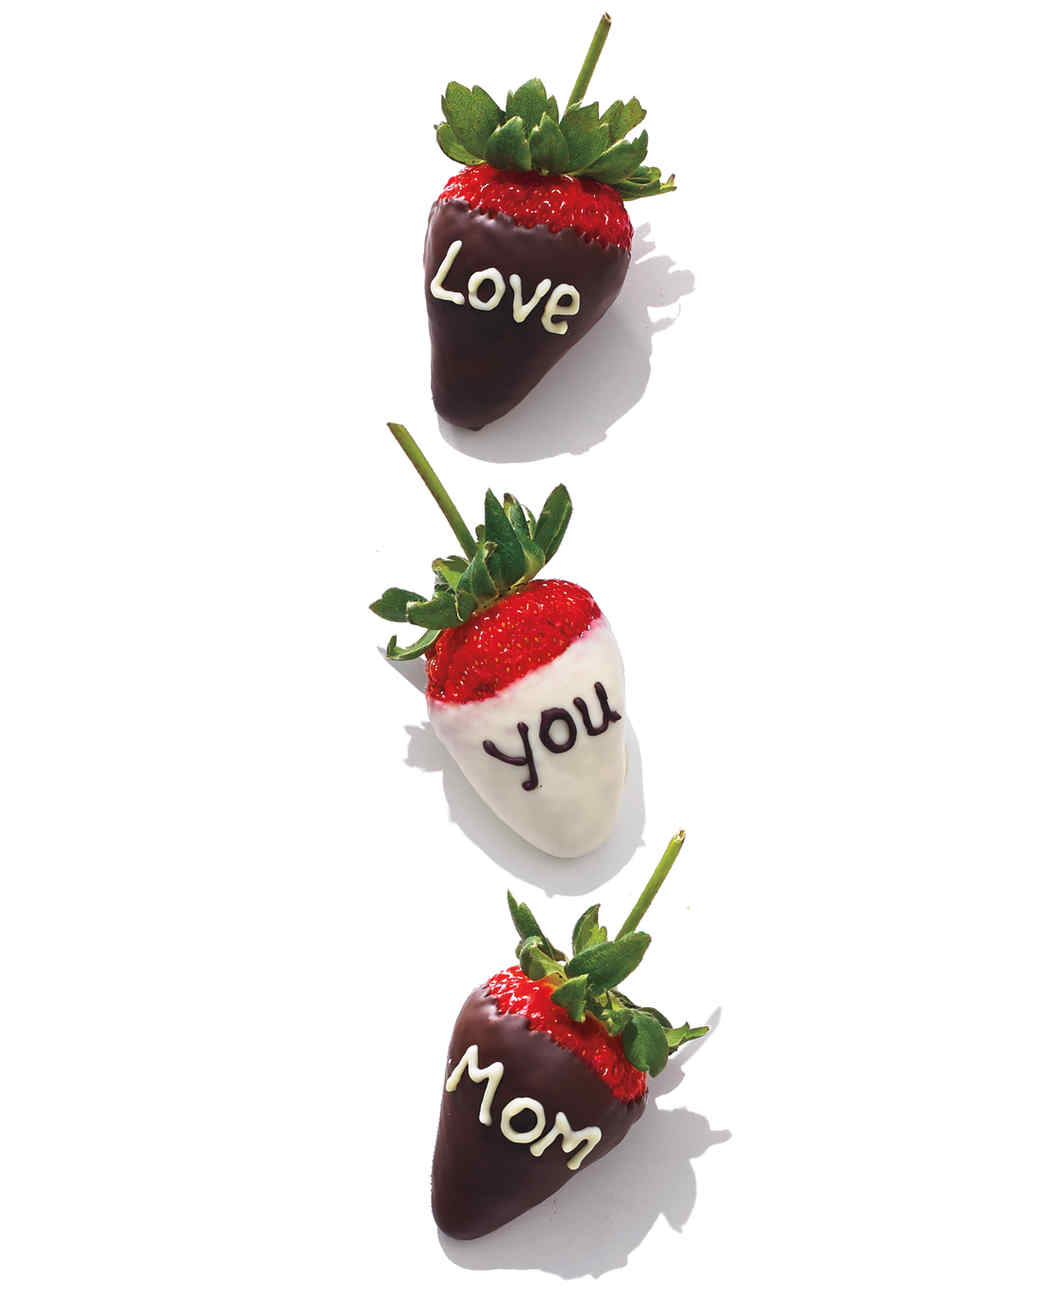 mothers-day-strawberries-silo-106-d111871-comp.jpg